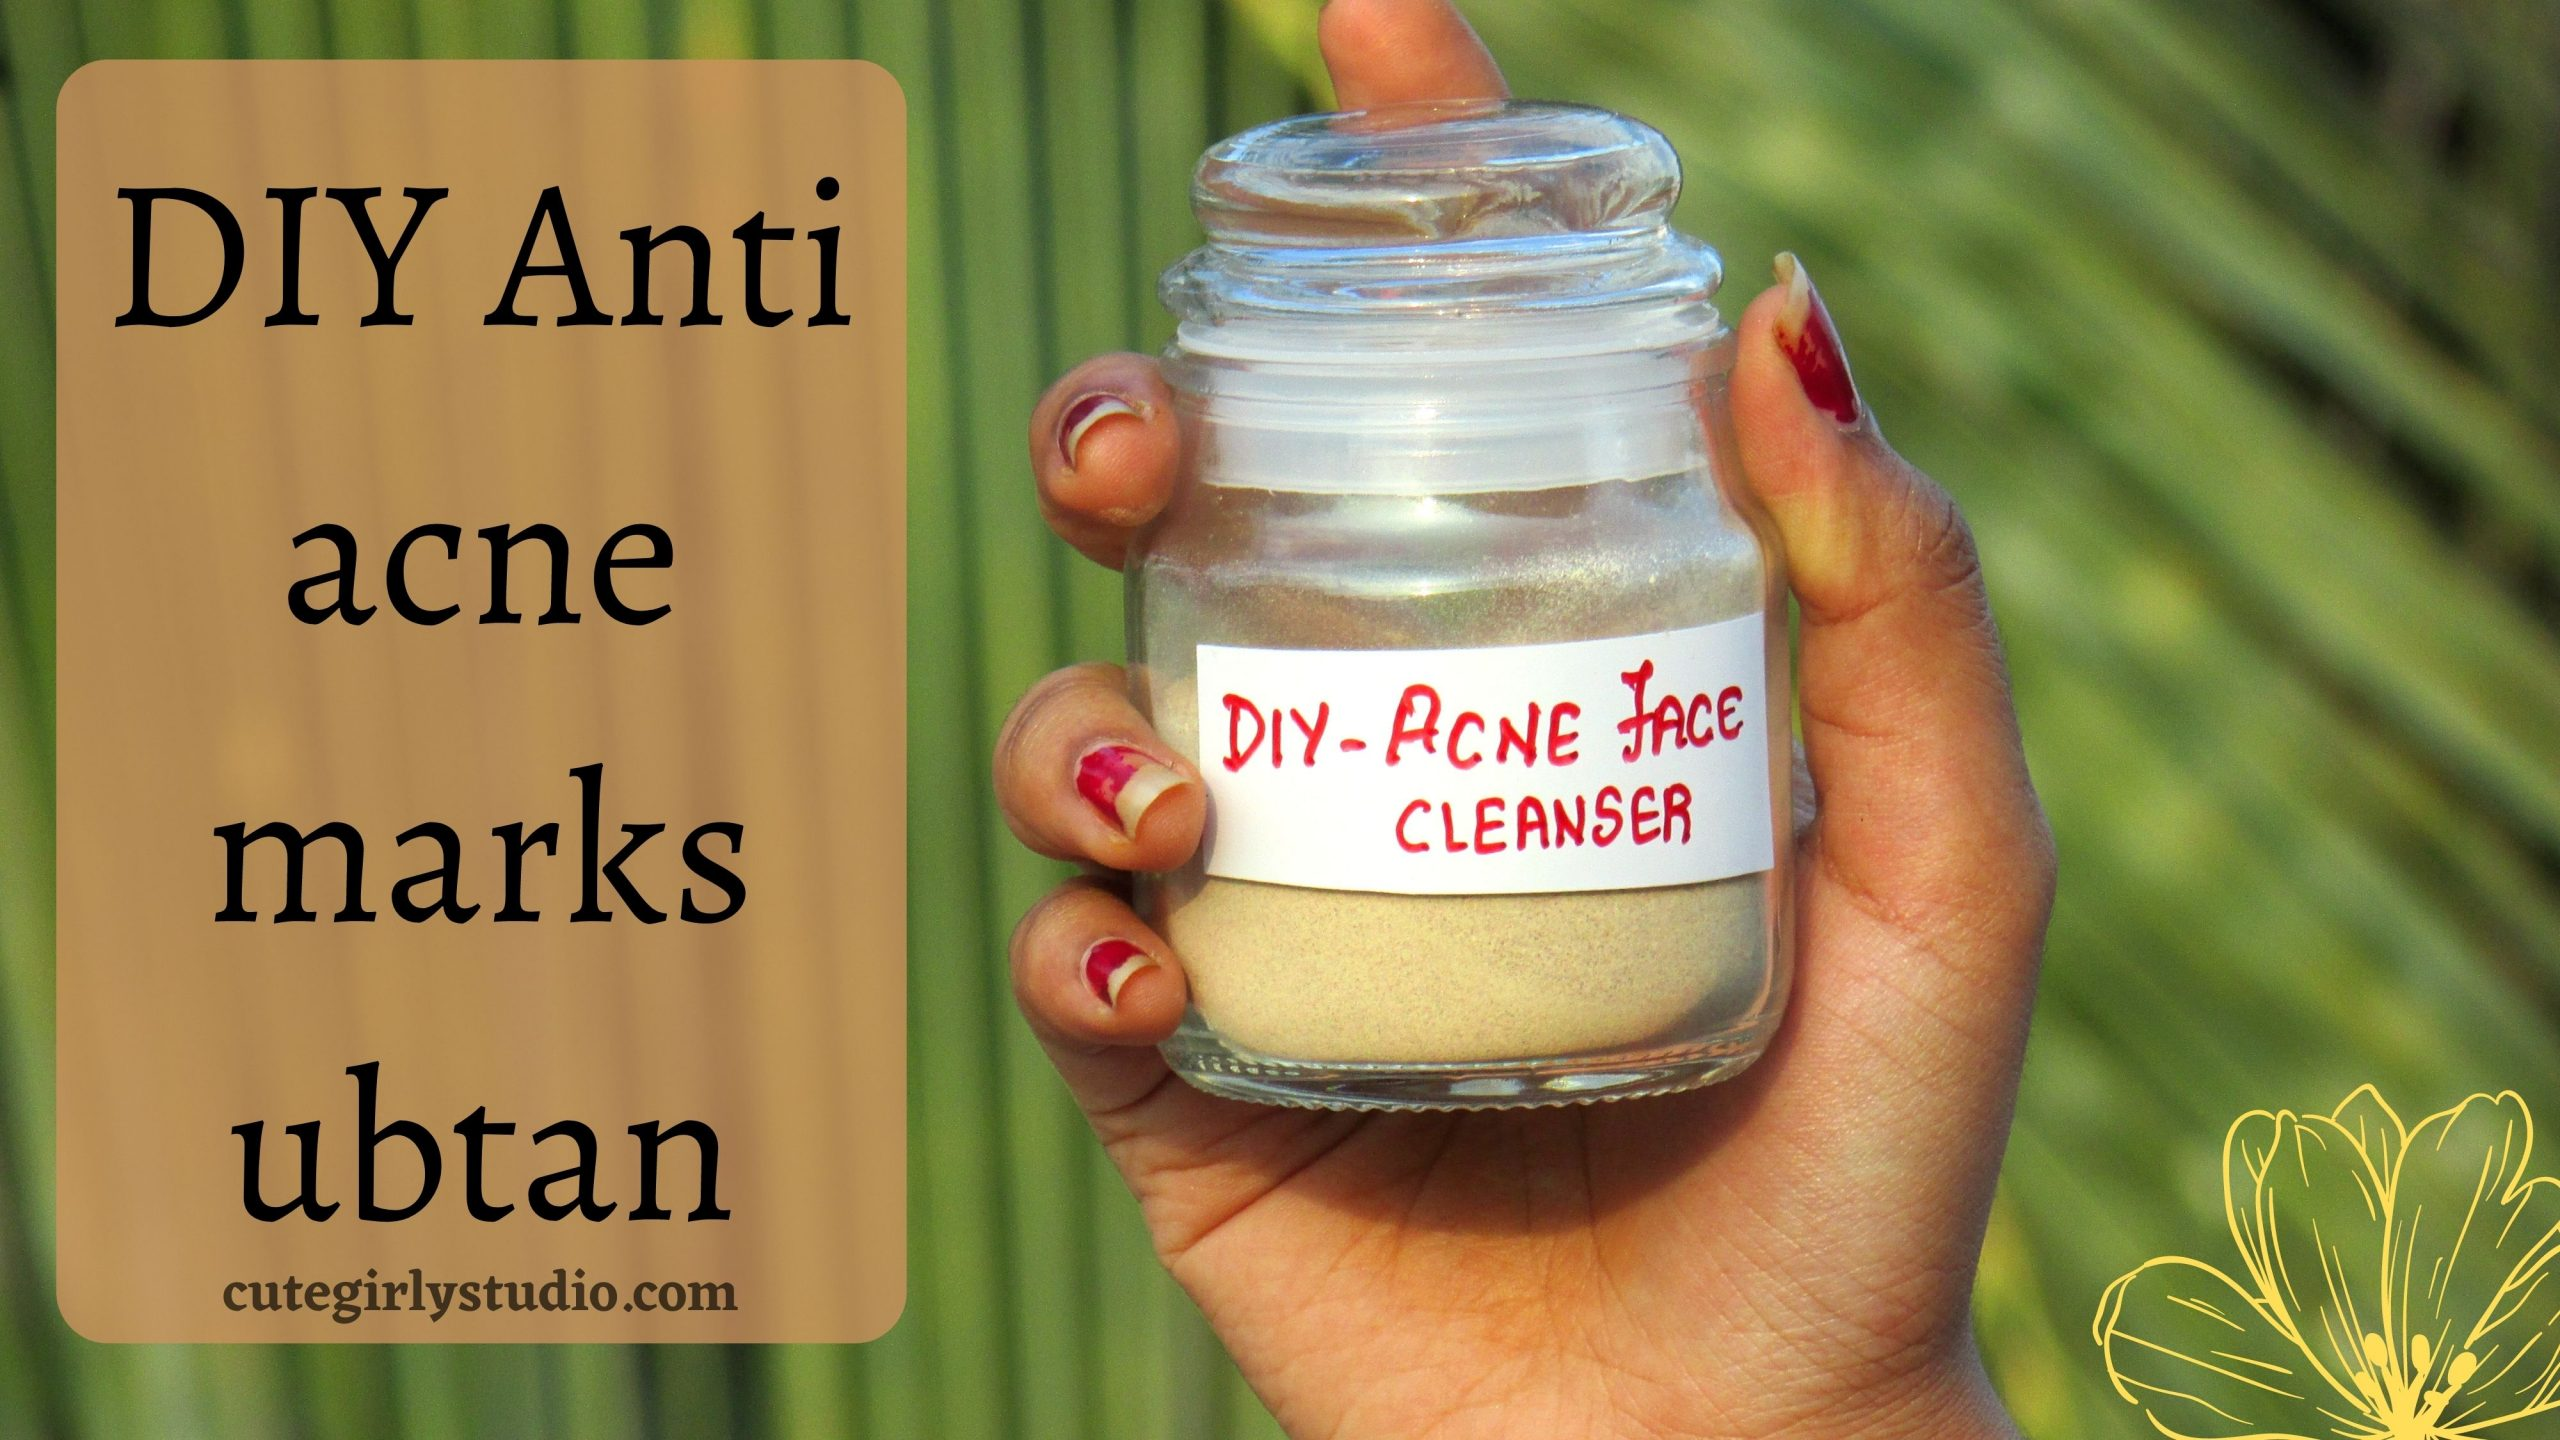 DIY Anti Acne Marks Ubtan